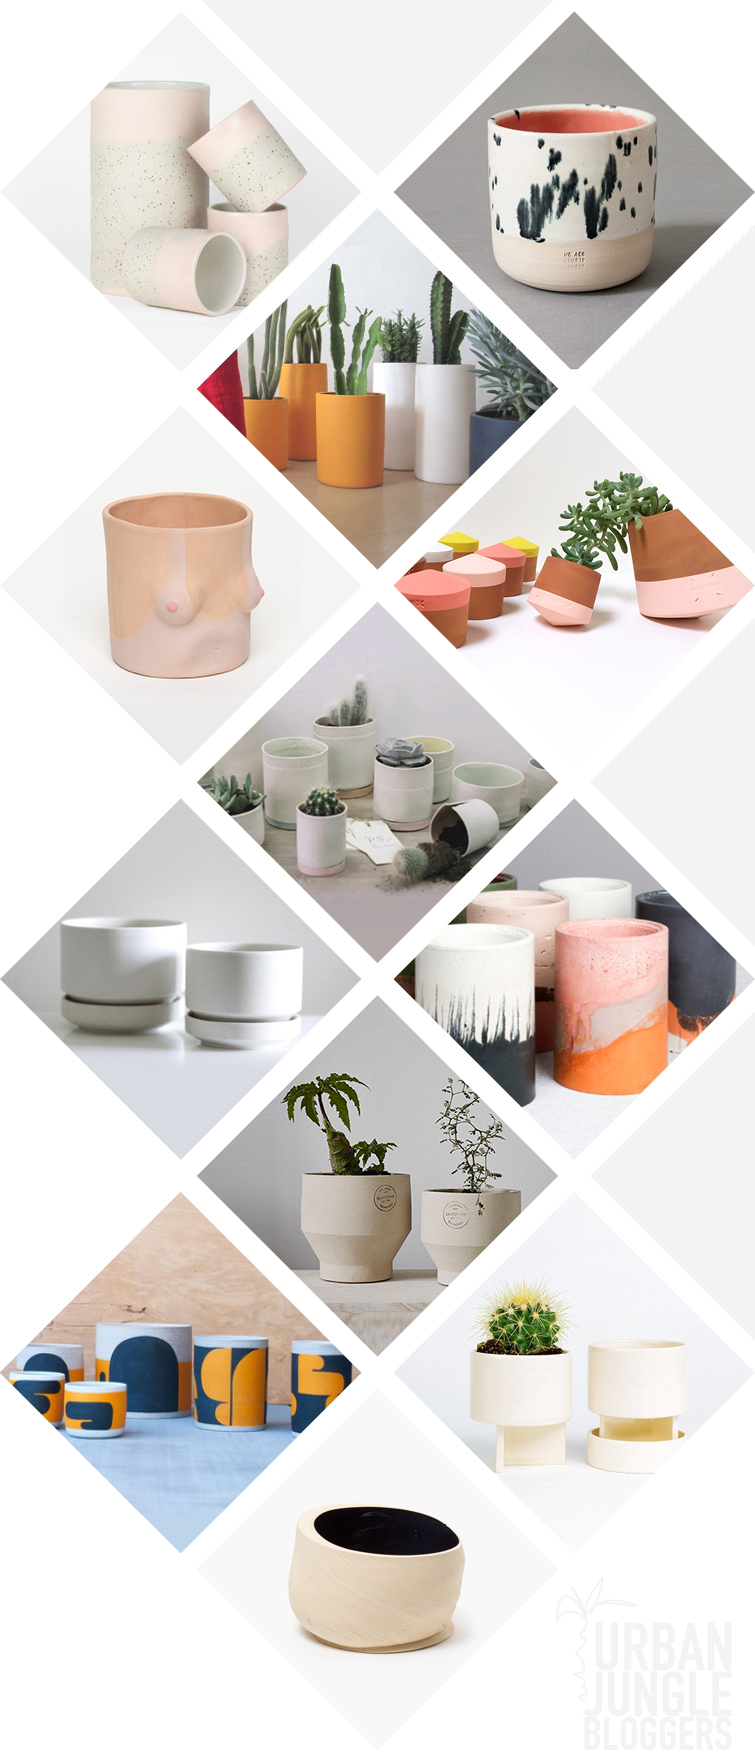 JOELIX.com | Creative plant pots for a contemporary urban jungle